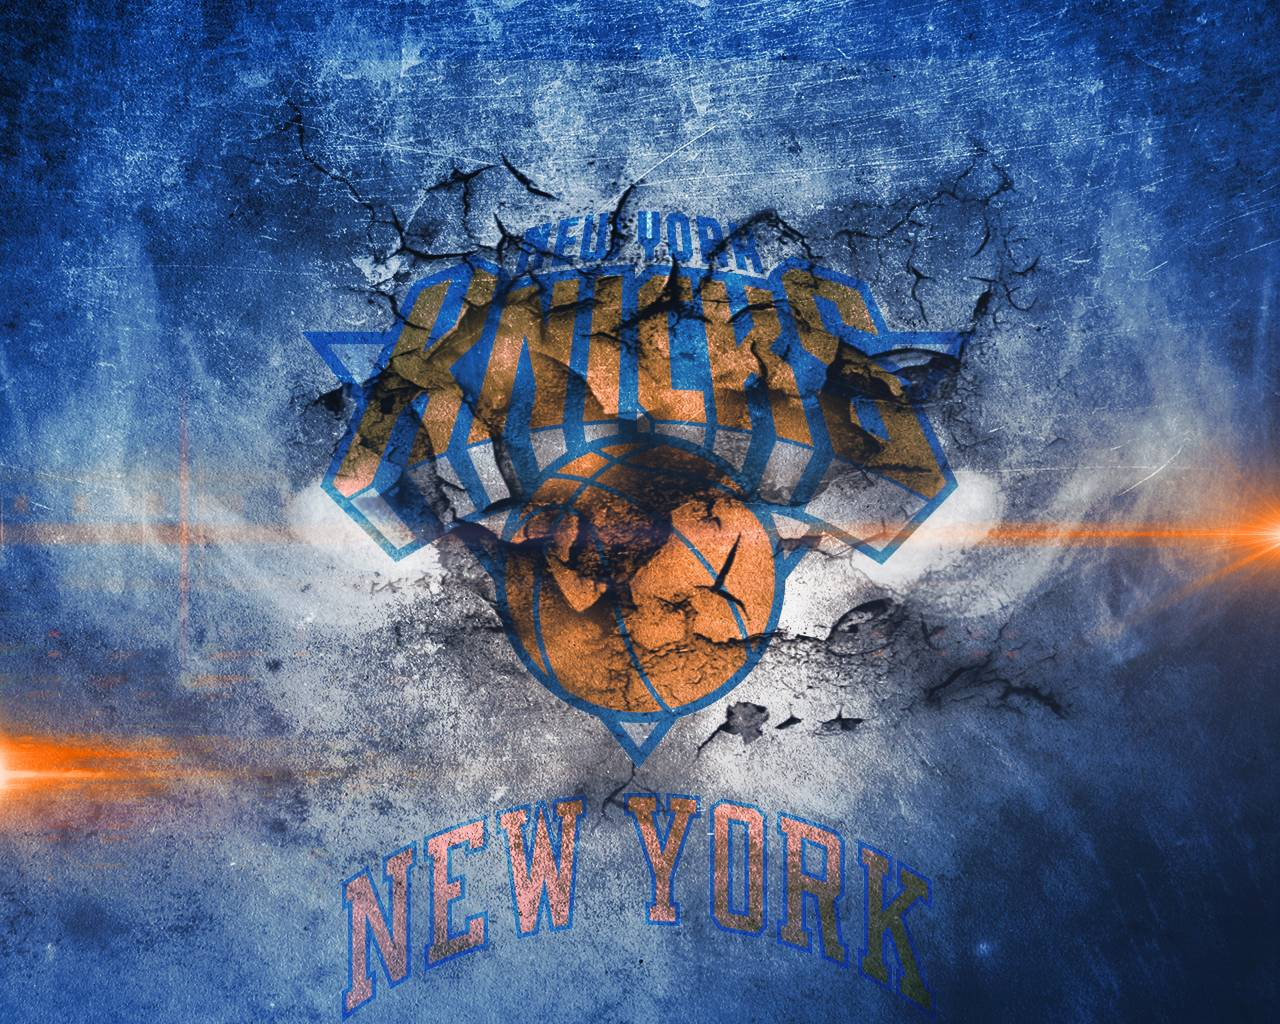 New York Knicks Wallpapers 2 Jpg Car Pictures